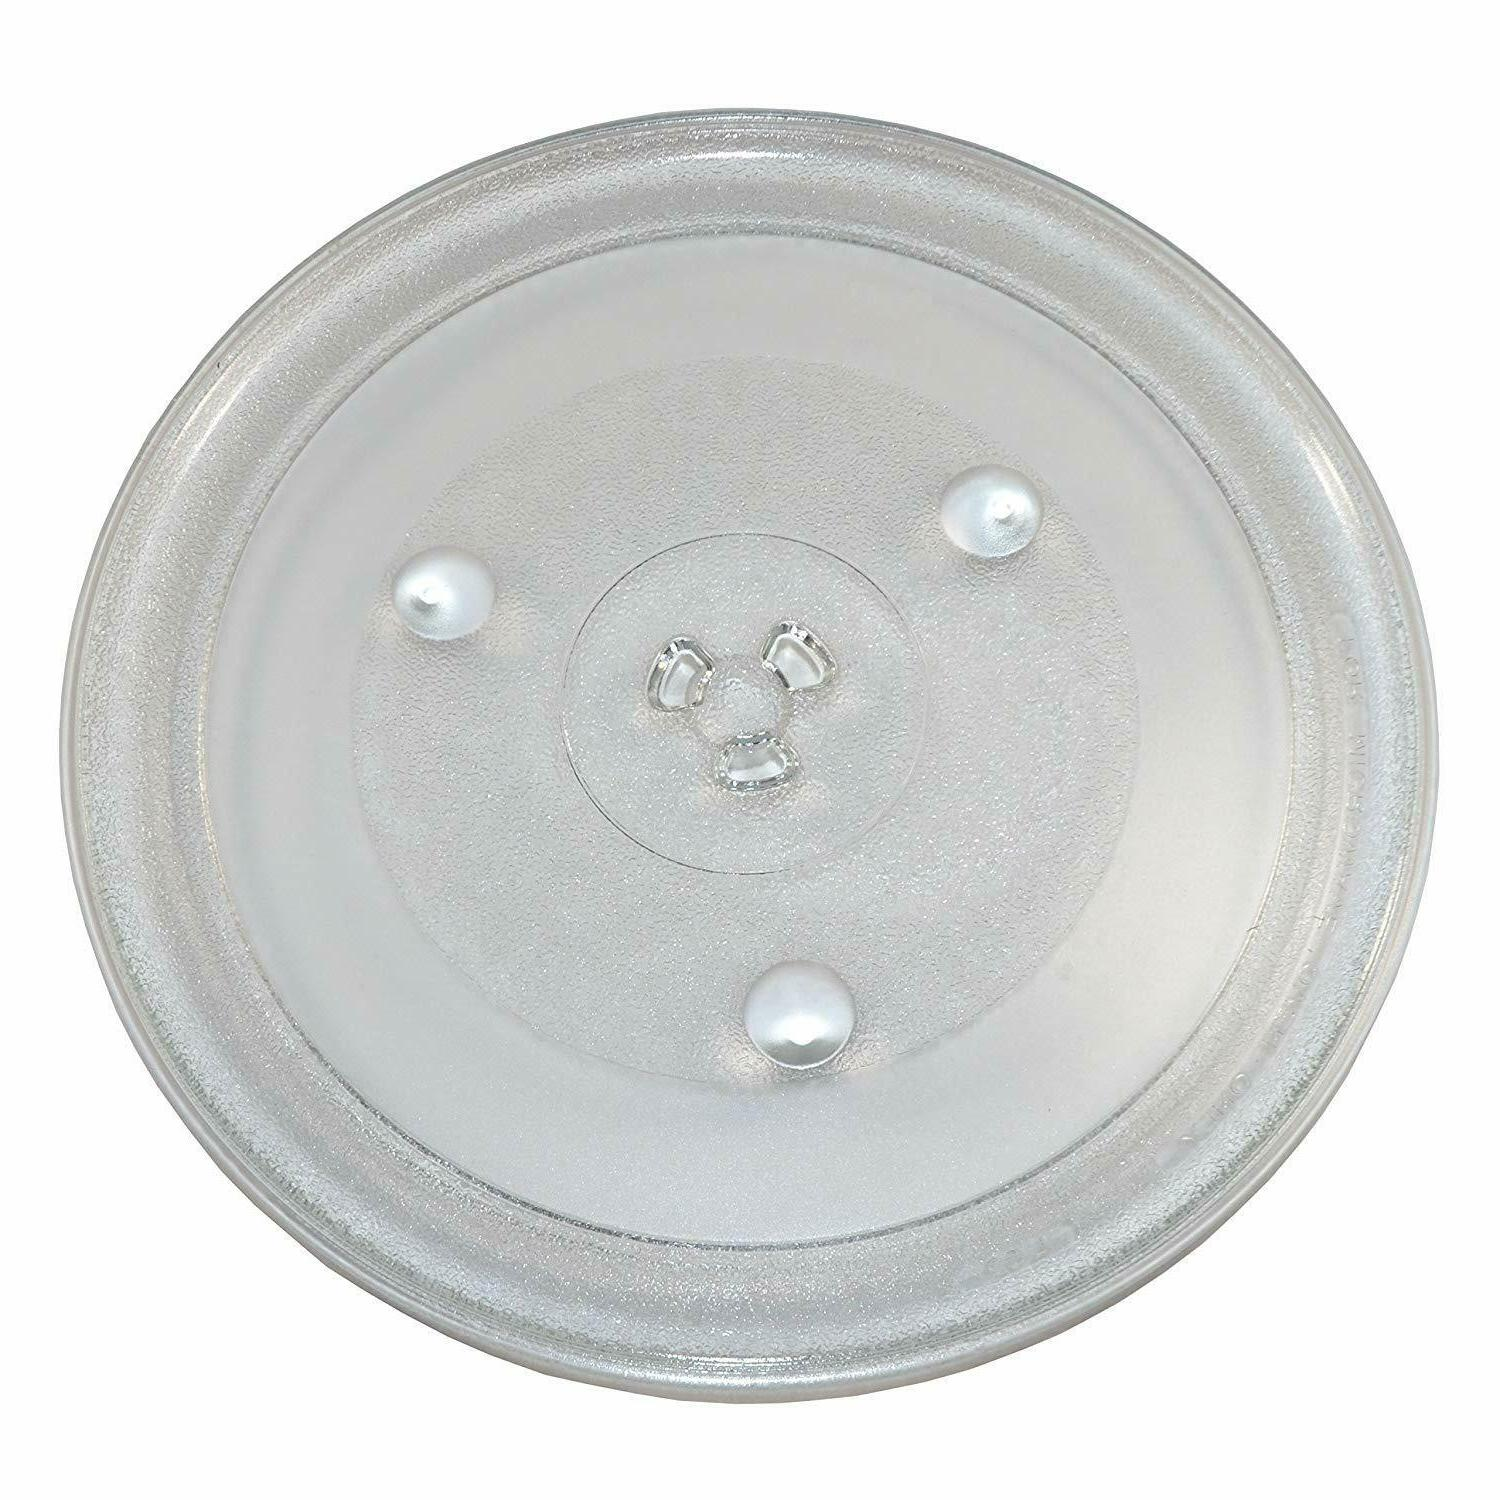 New 12 3/8 Microwave Glass Turntable Plate Emerson Hamilton